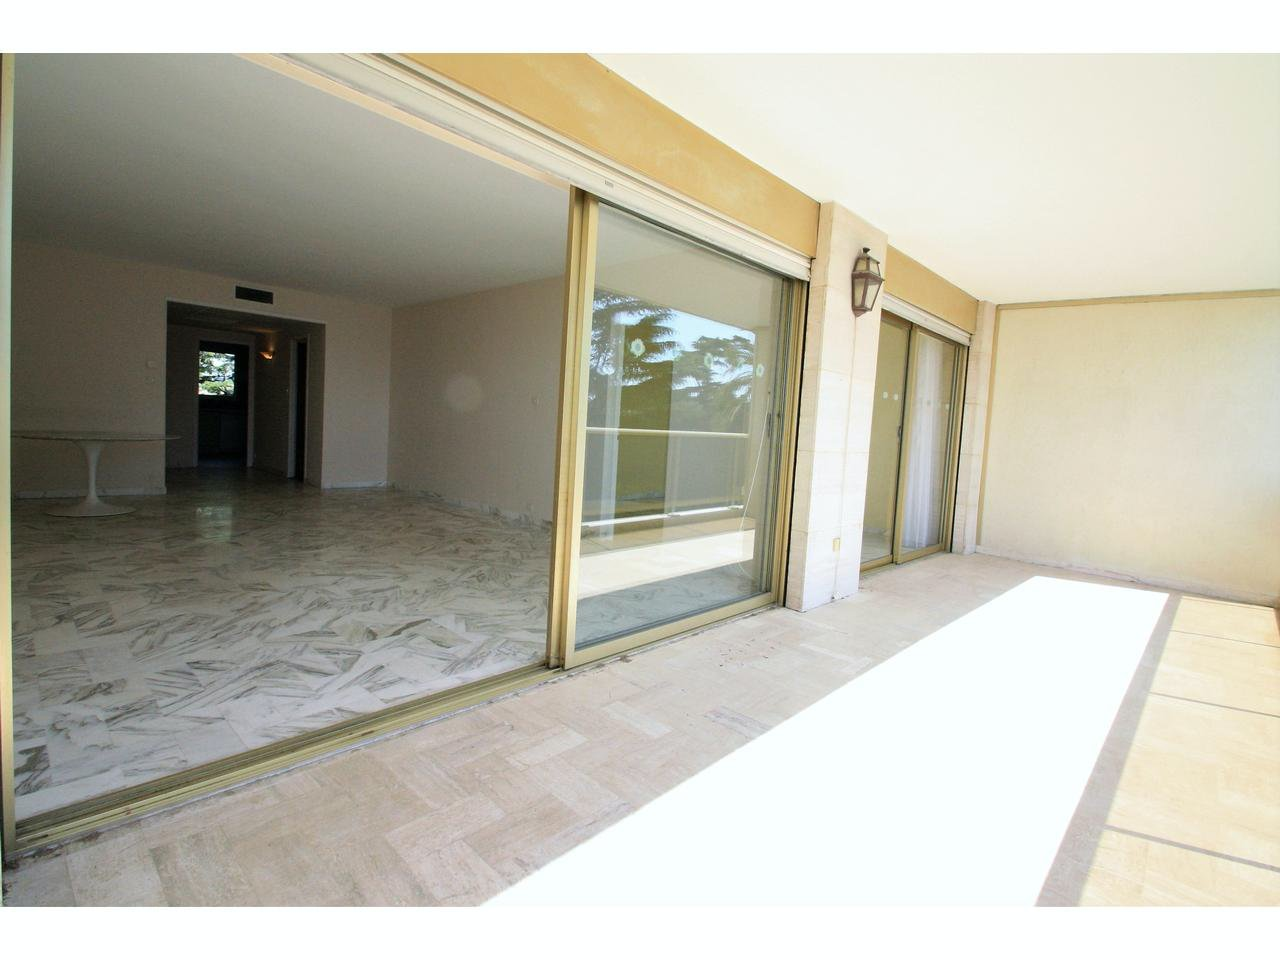 3 room apartment with sea view facing south